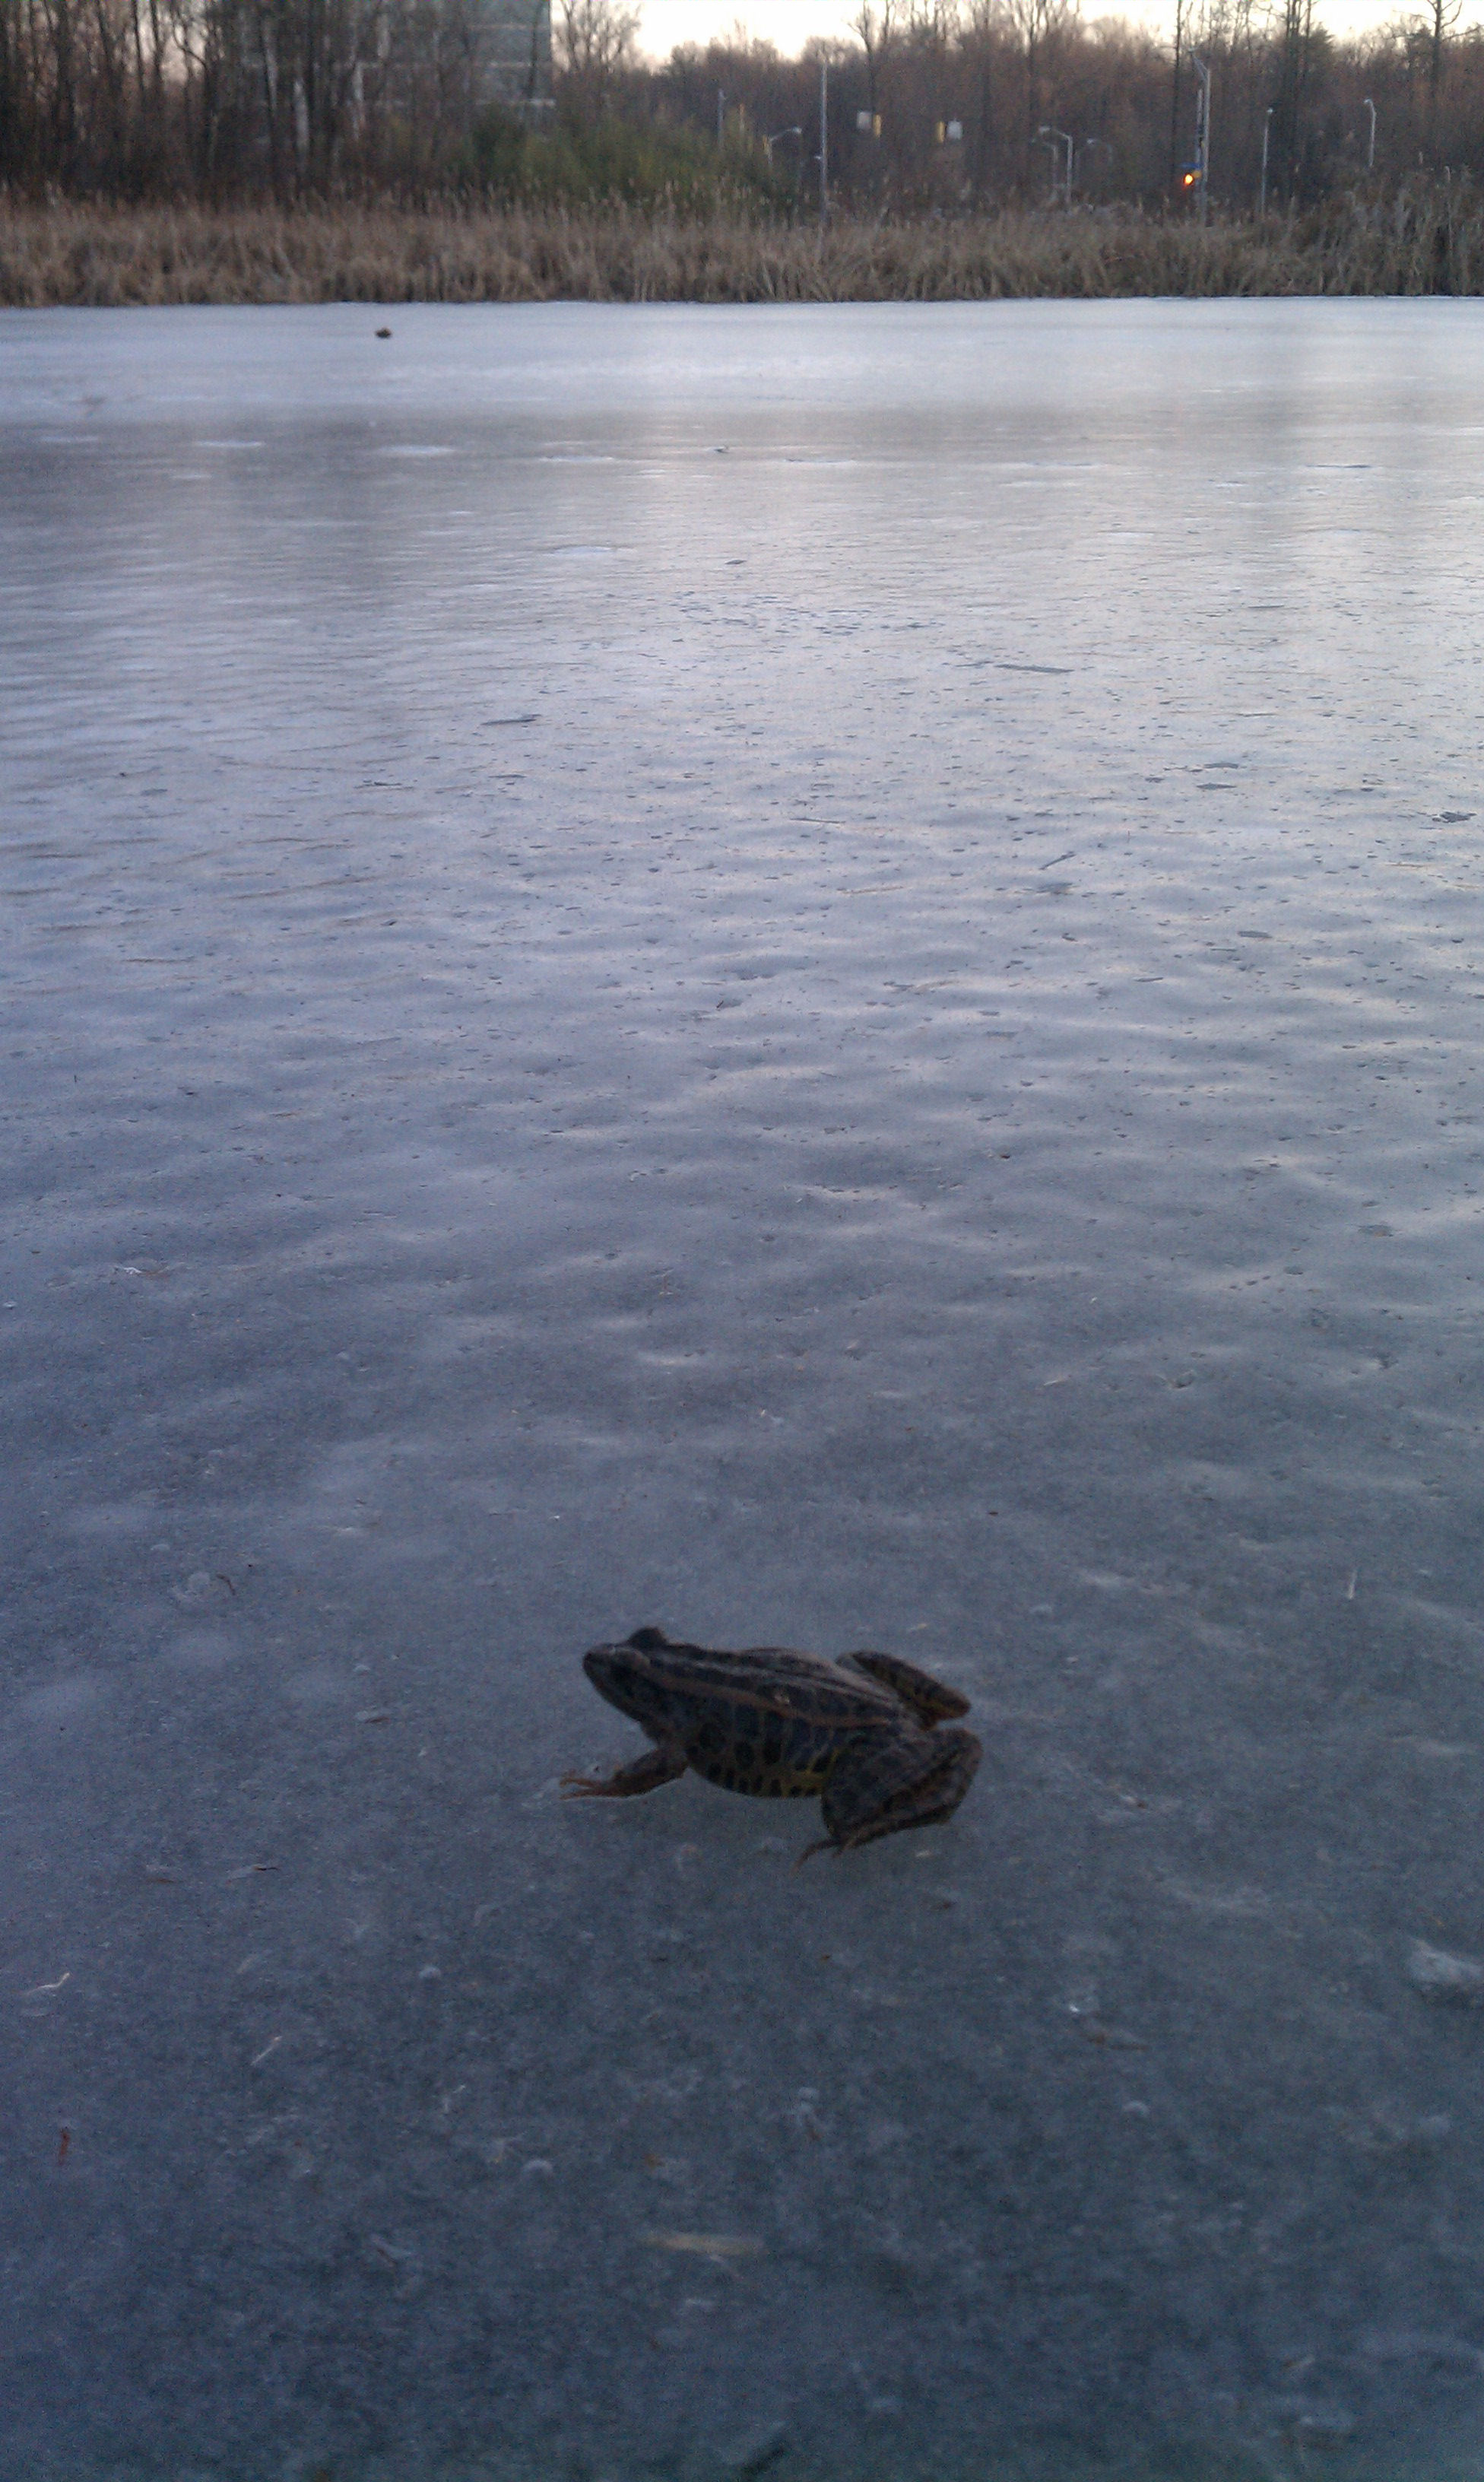 Amphibian On Ice by Cindy Cotte Griffiths